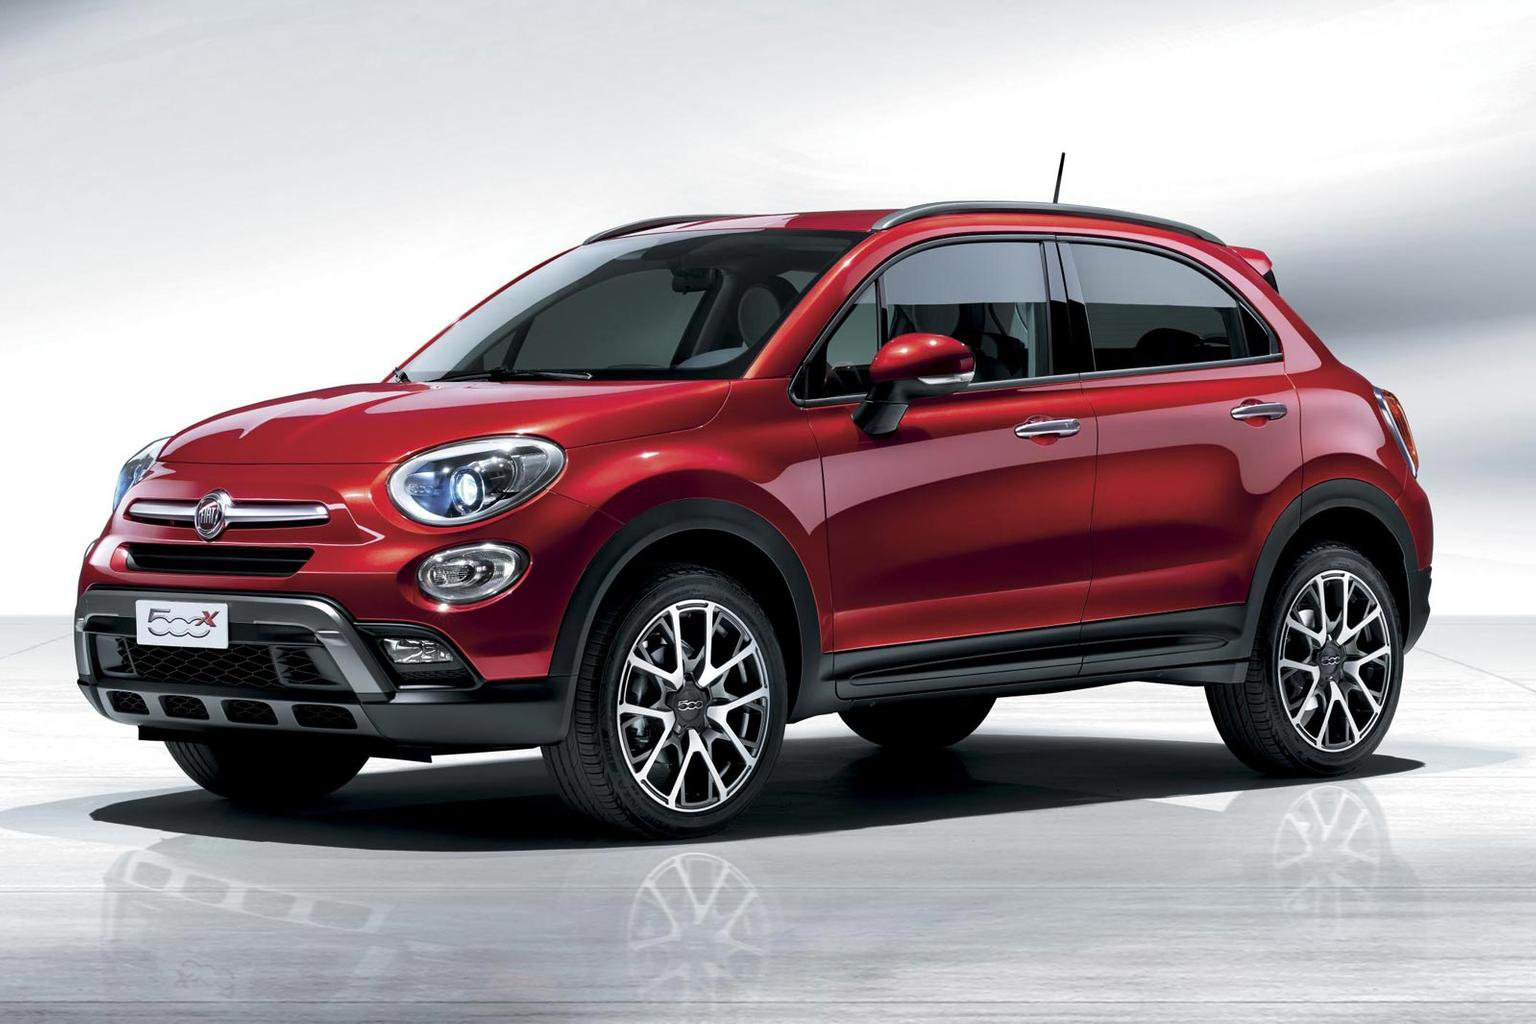 Fiat 500X to have same level of customisation as other 500 models